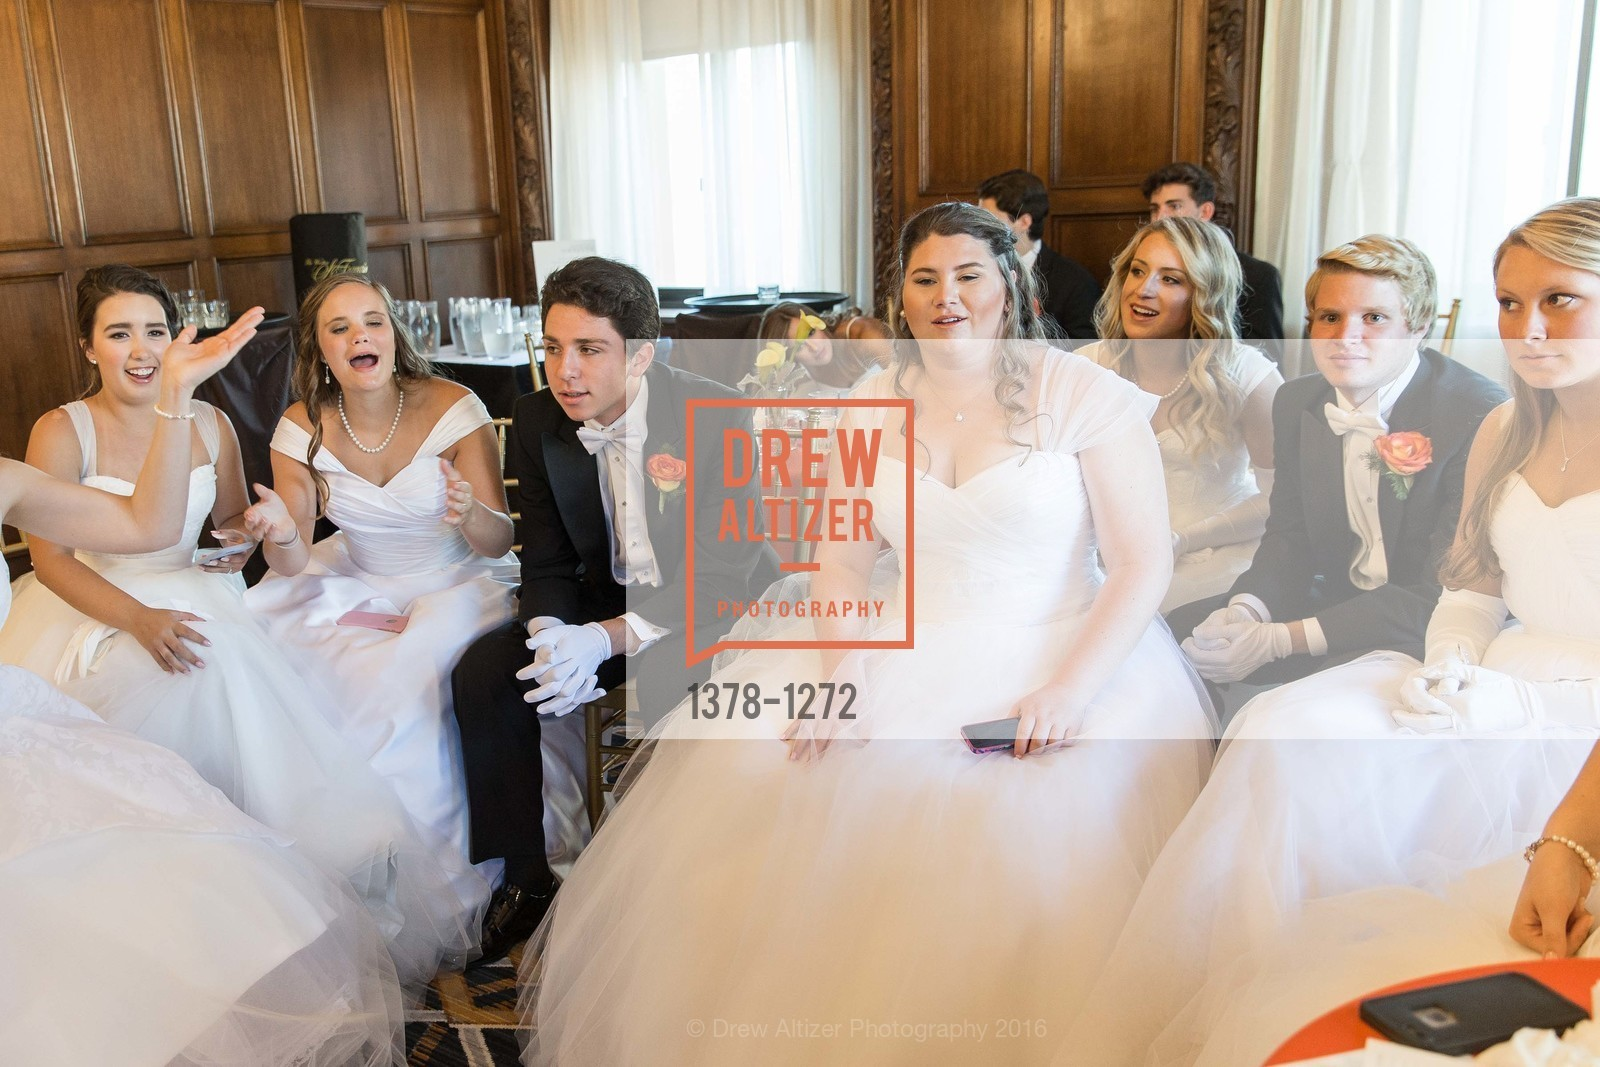 Anna Garman, Catherine Ann Bick, Hart Ayoob, Casey Mathews, Madeline Kuhn, Spencer Zeff, Photo #1378-1272